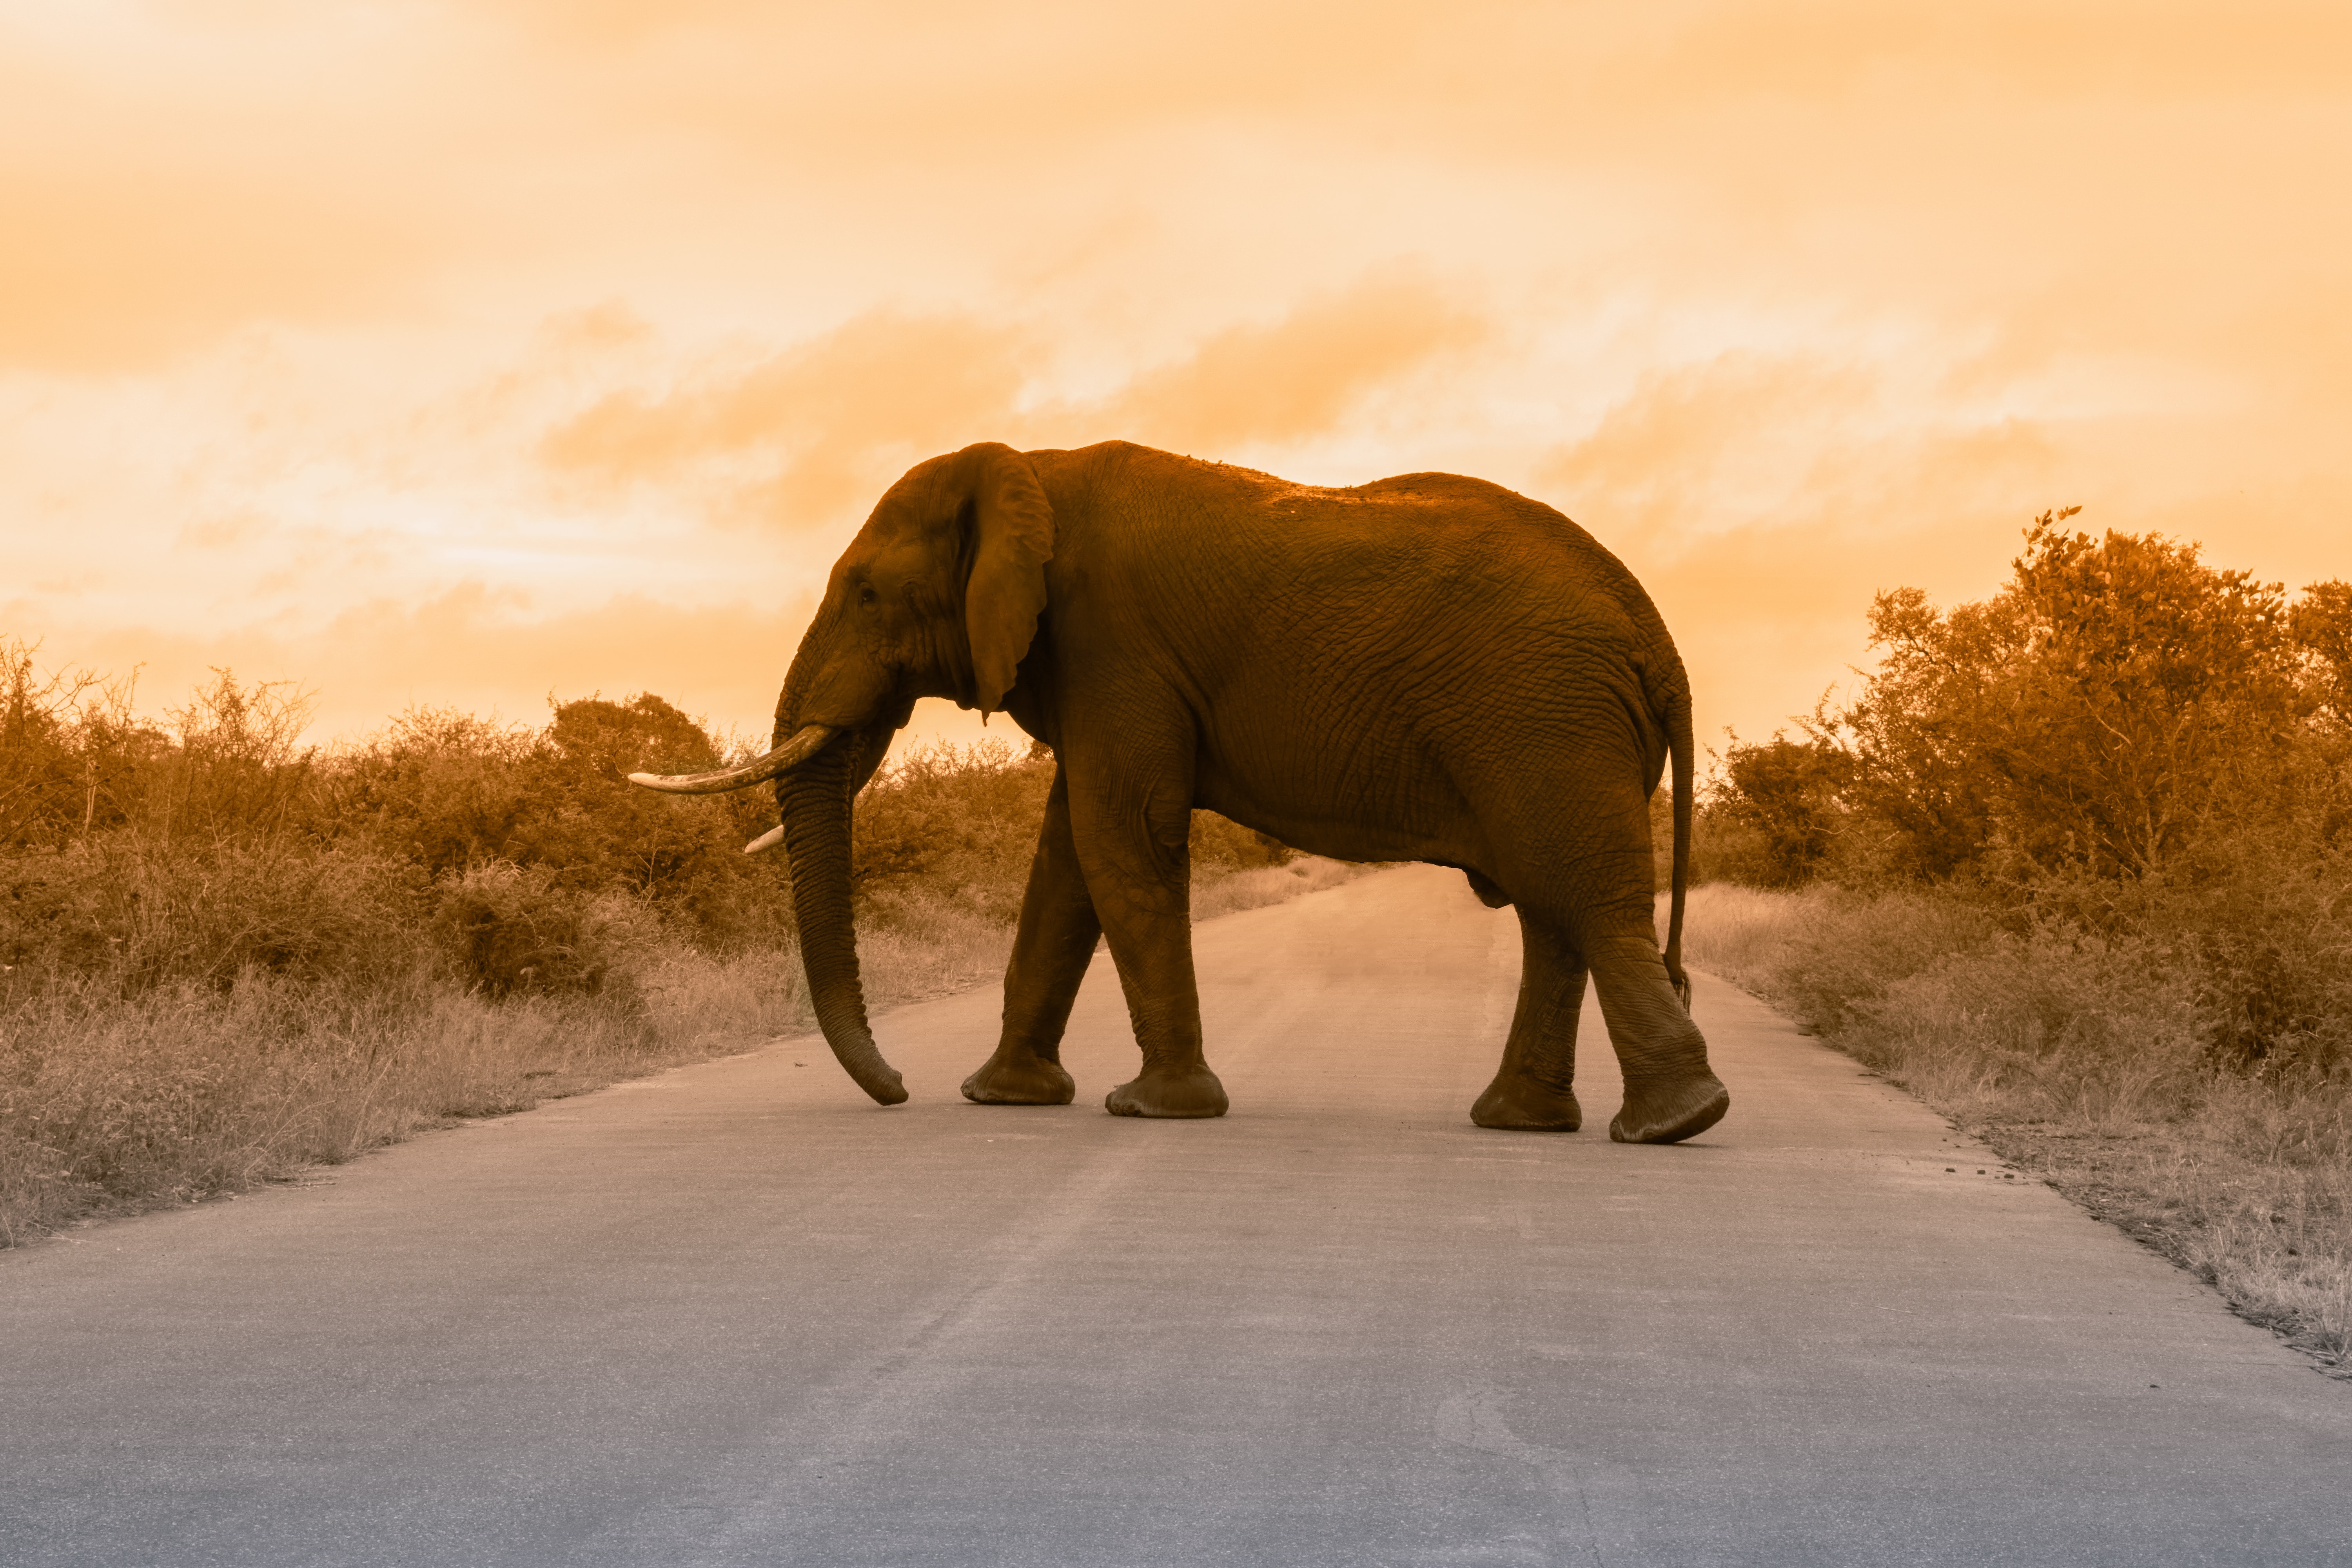 silhouette photo of elephant in the middle of the road